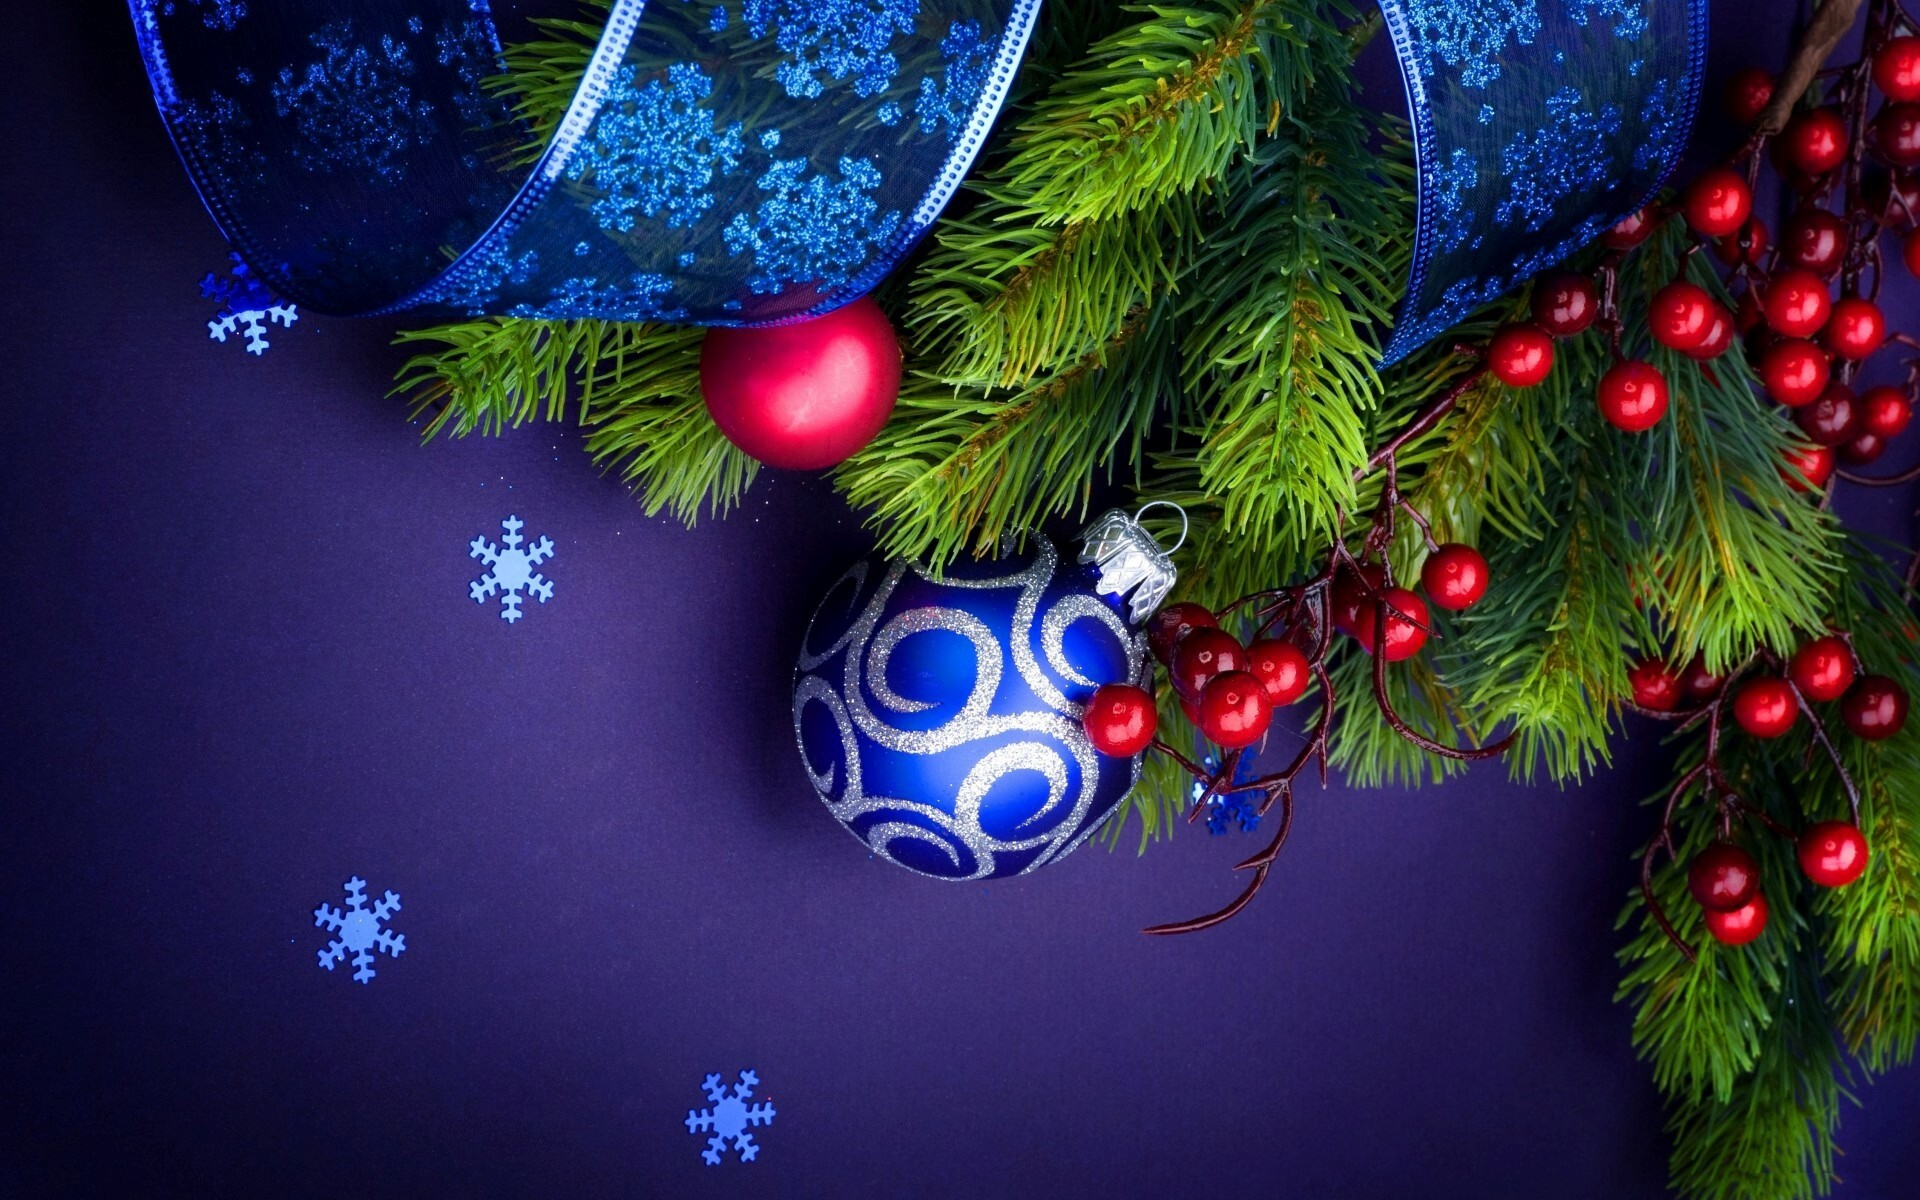 Christmas Balls And Trees Hd Nice Wallpapers Download